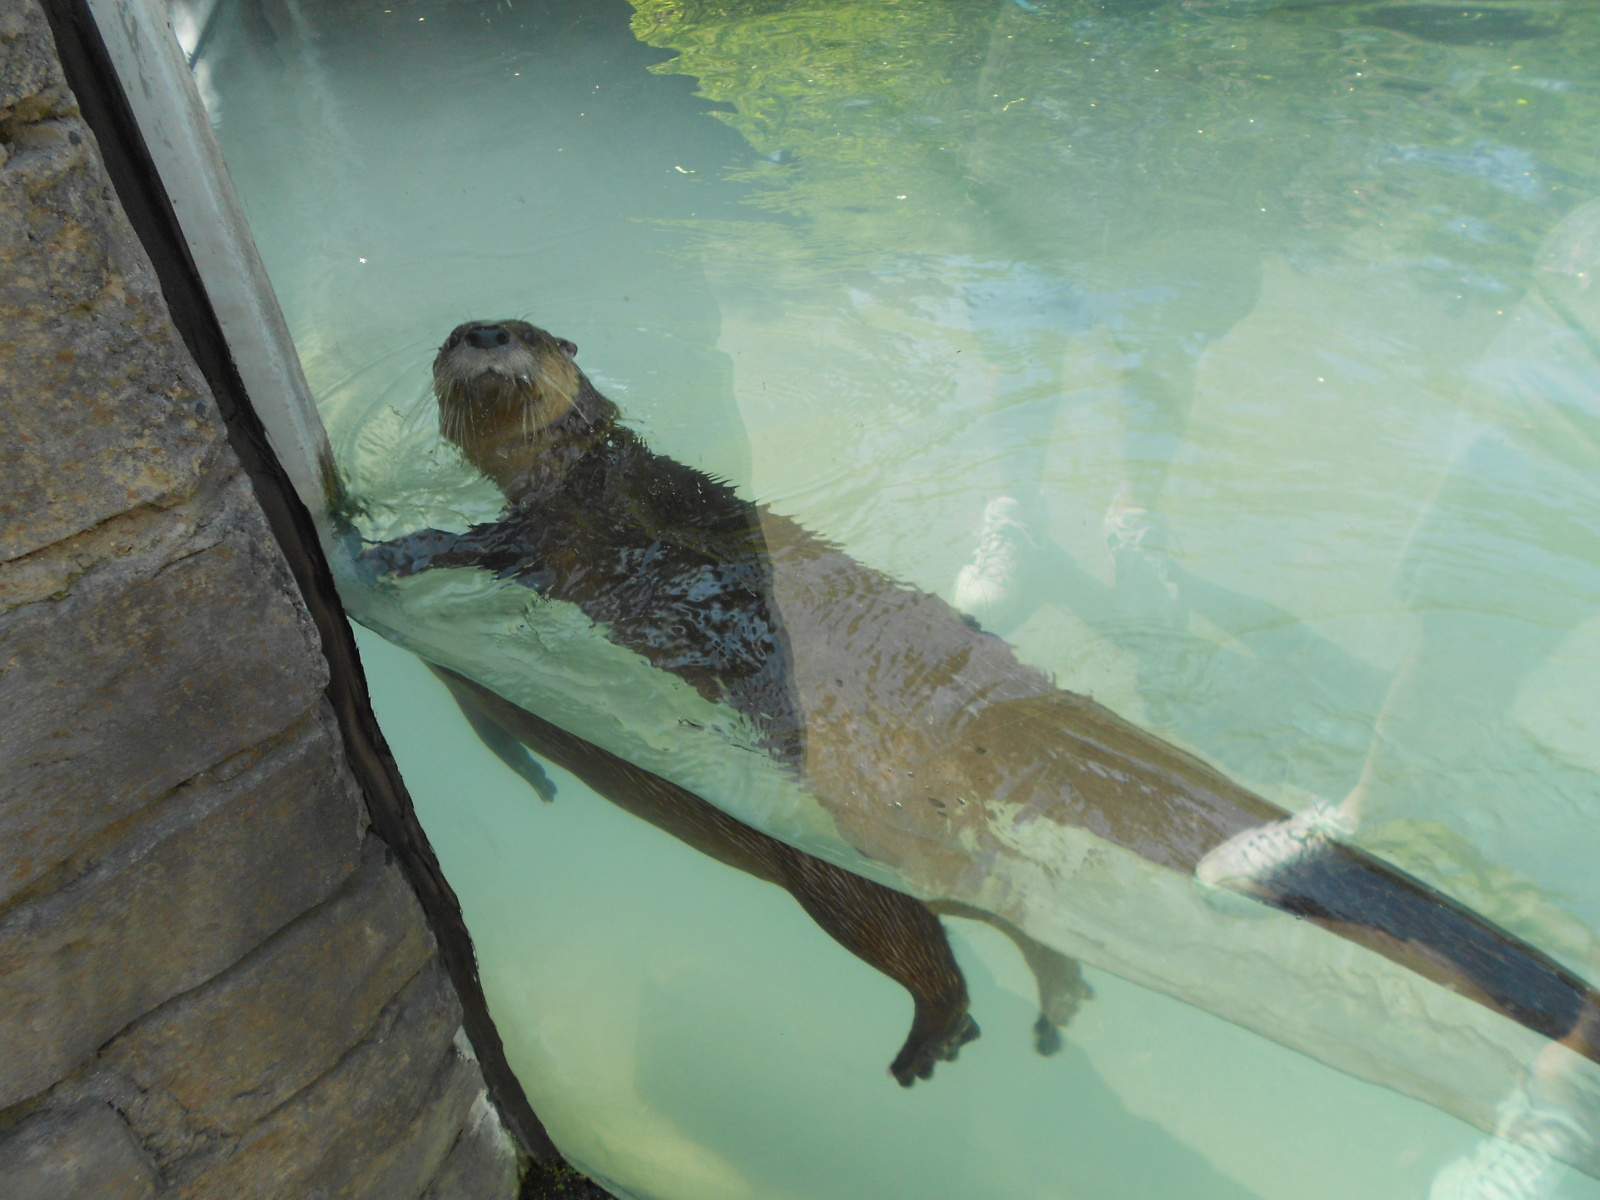 Otter Looks at the Humans Who Are Looking at Him 2